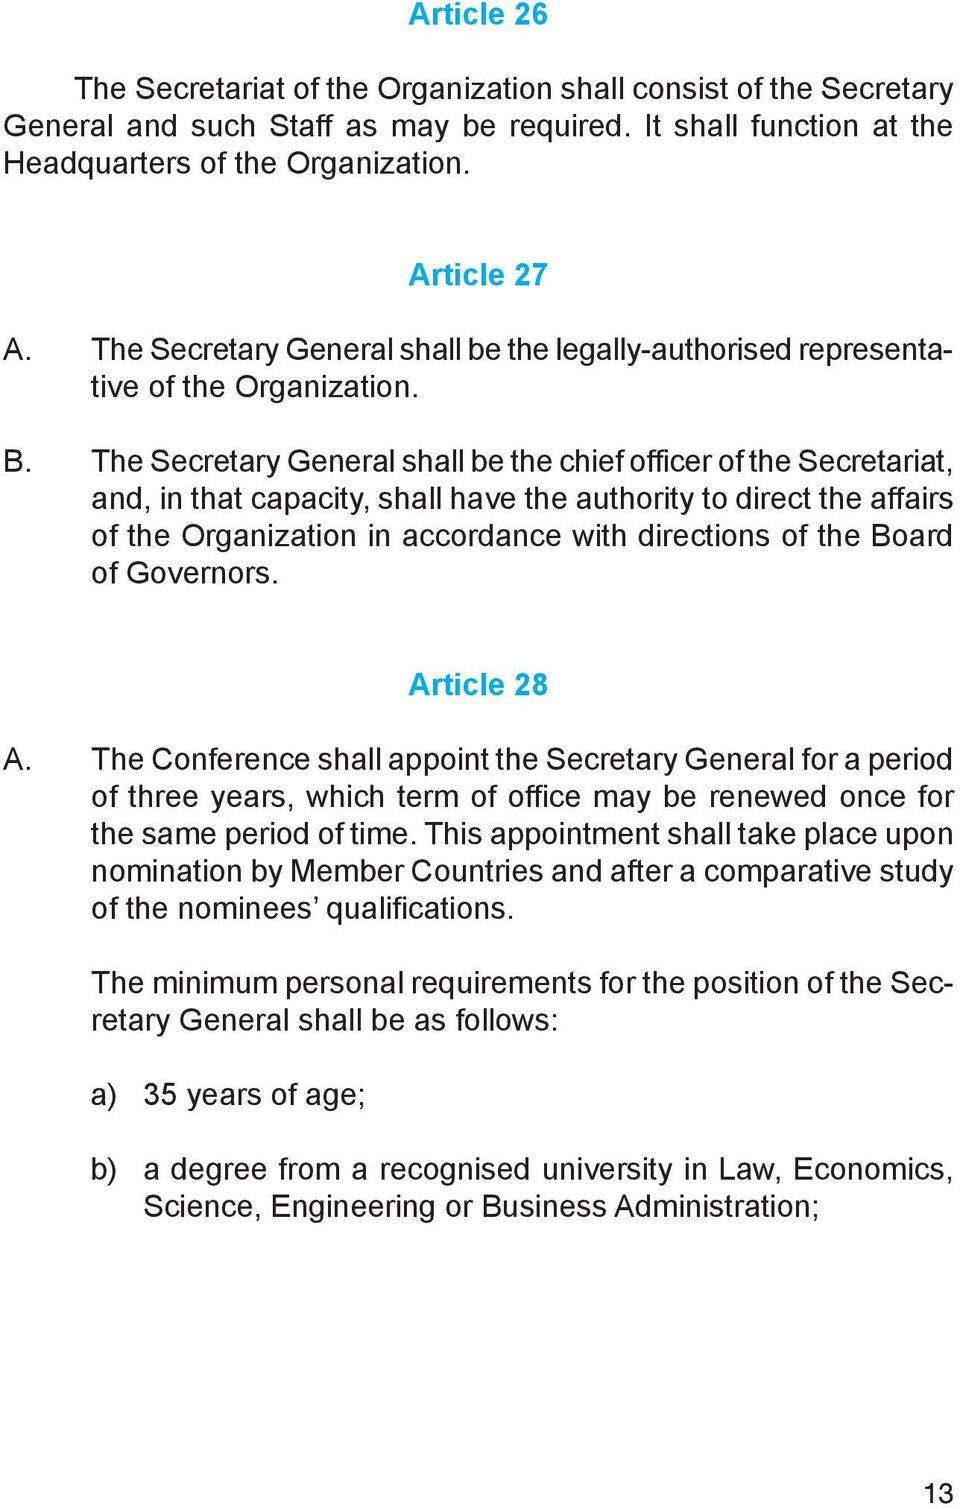 The Secretary General shall be the chief officer of the Secretariat, and, in that capacity, shall have the authority to direct the affairs of the Organization in accordance with directions of the